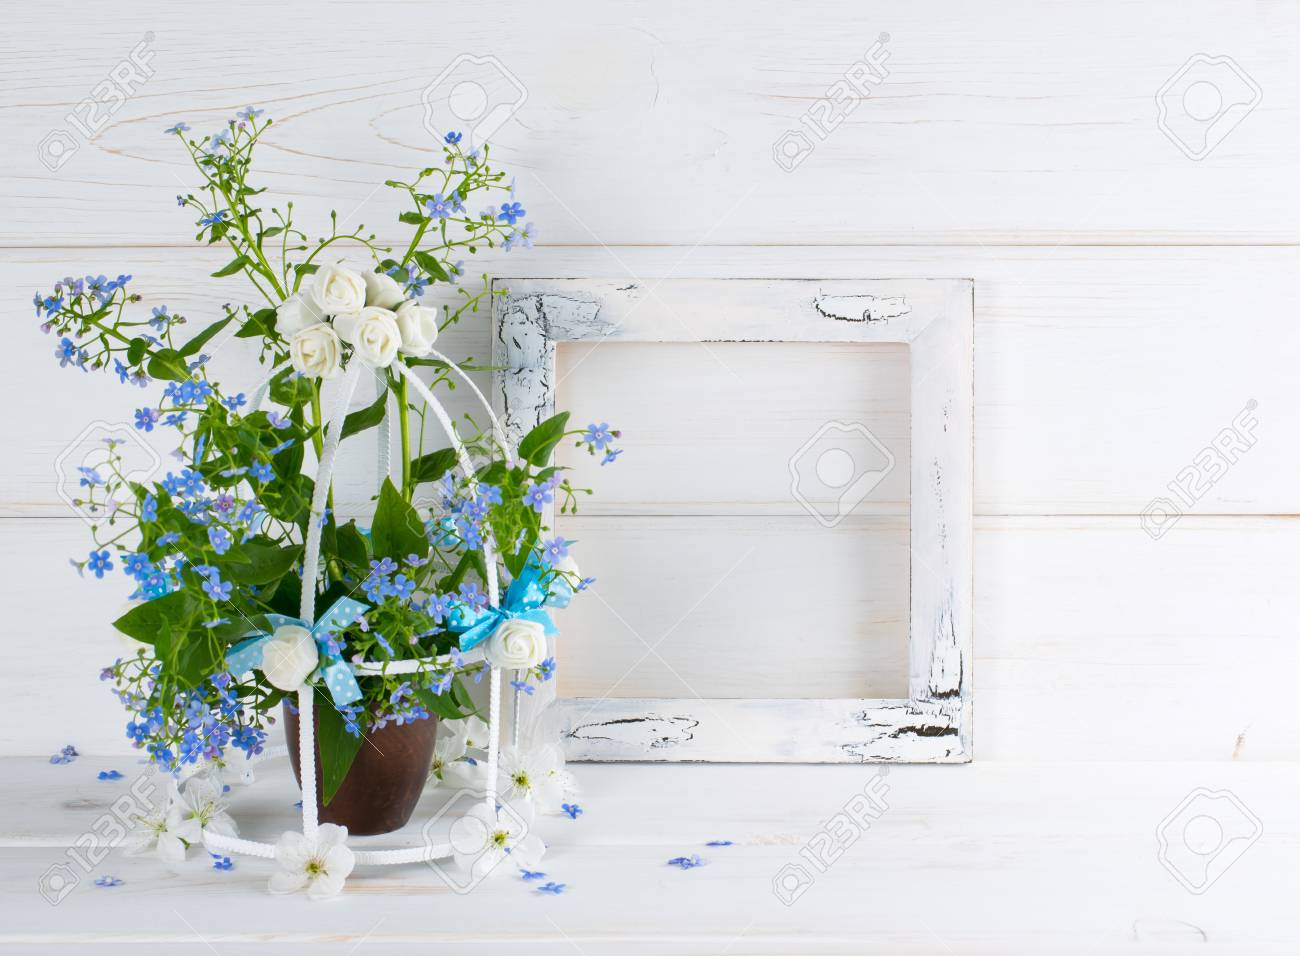 Forget-me-not Flowers With Birdcage And Photo Frame With Craquelure ...